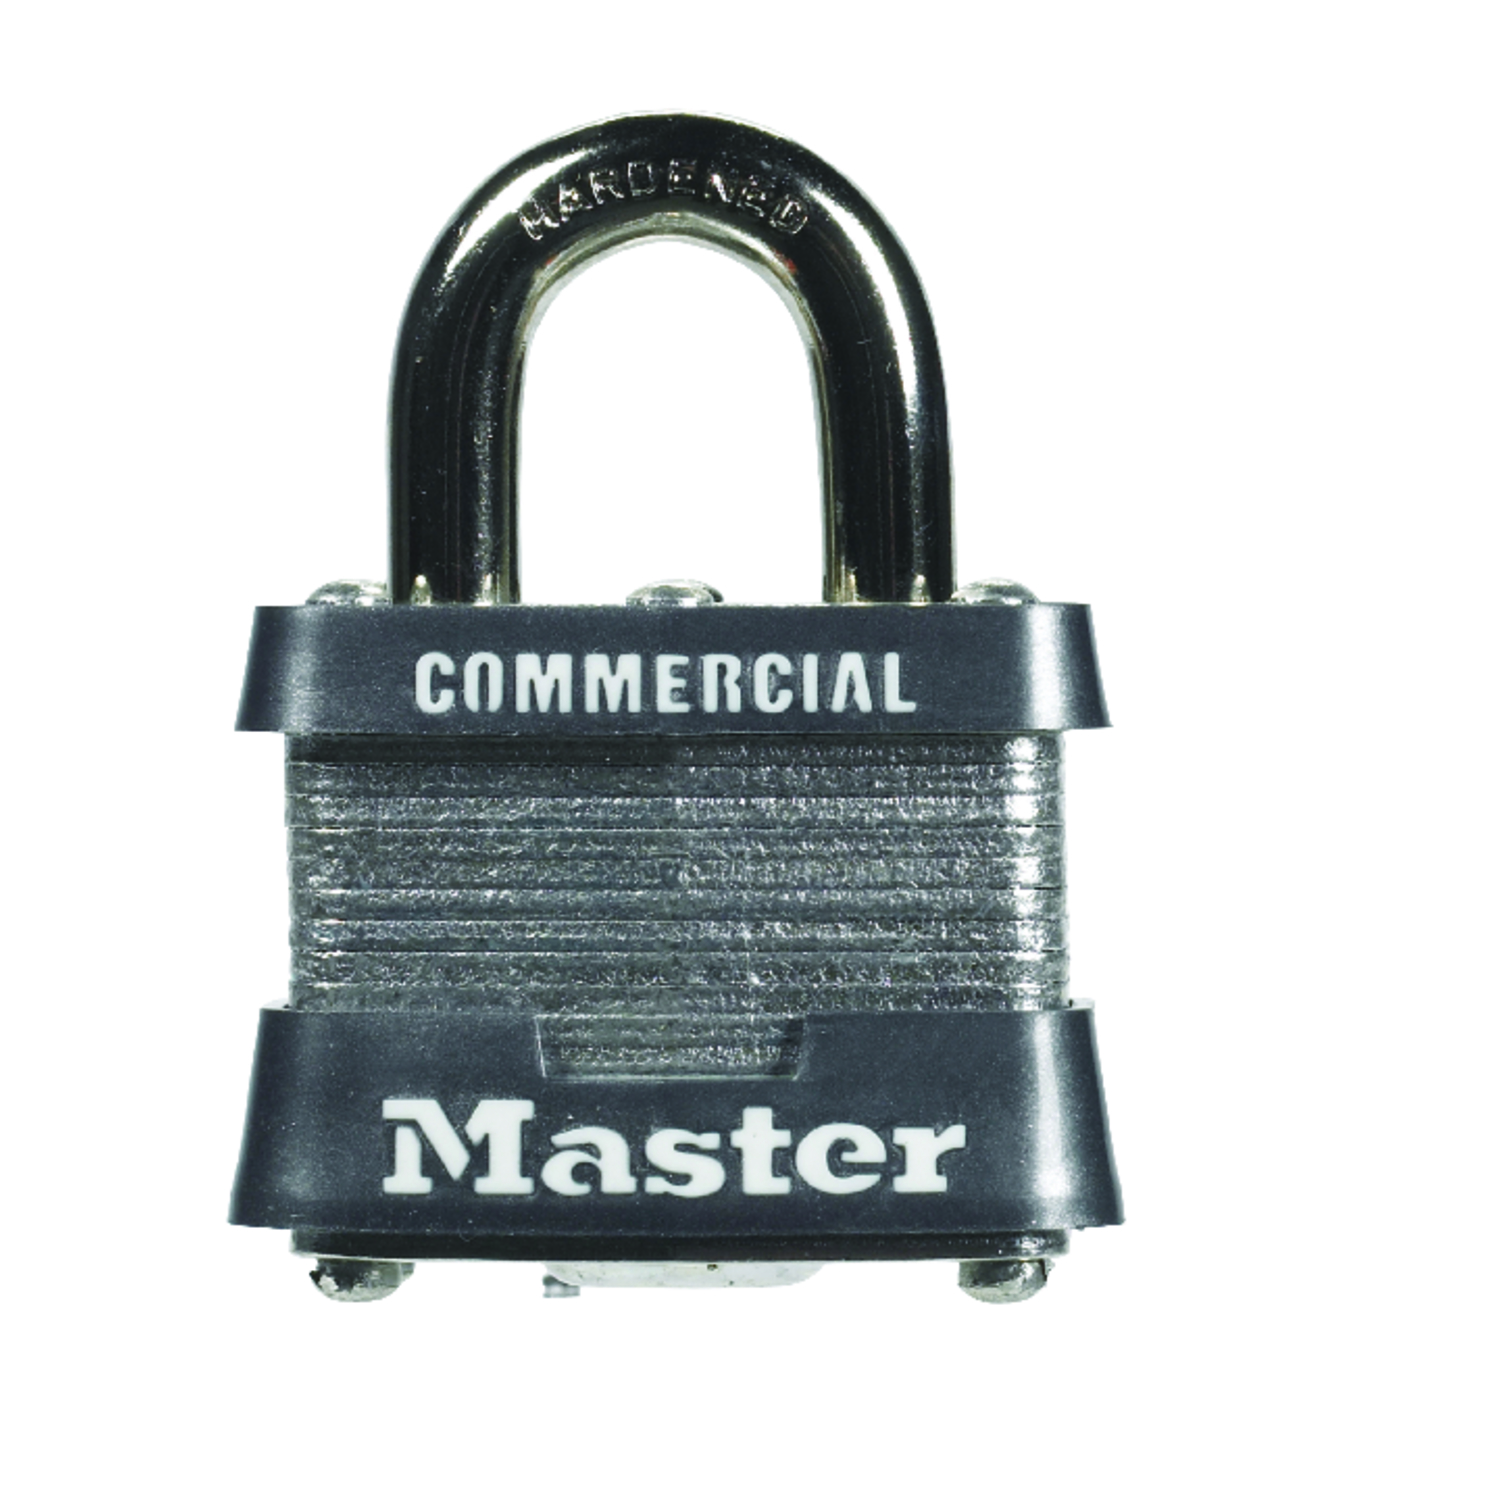 Master Lock  1-5/16 in. H x 1-5/8 in. W 4-Pin Cylinder  Laminated Steel  Padlock  1 pk Keyed Alike